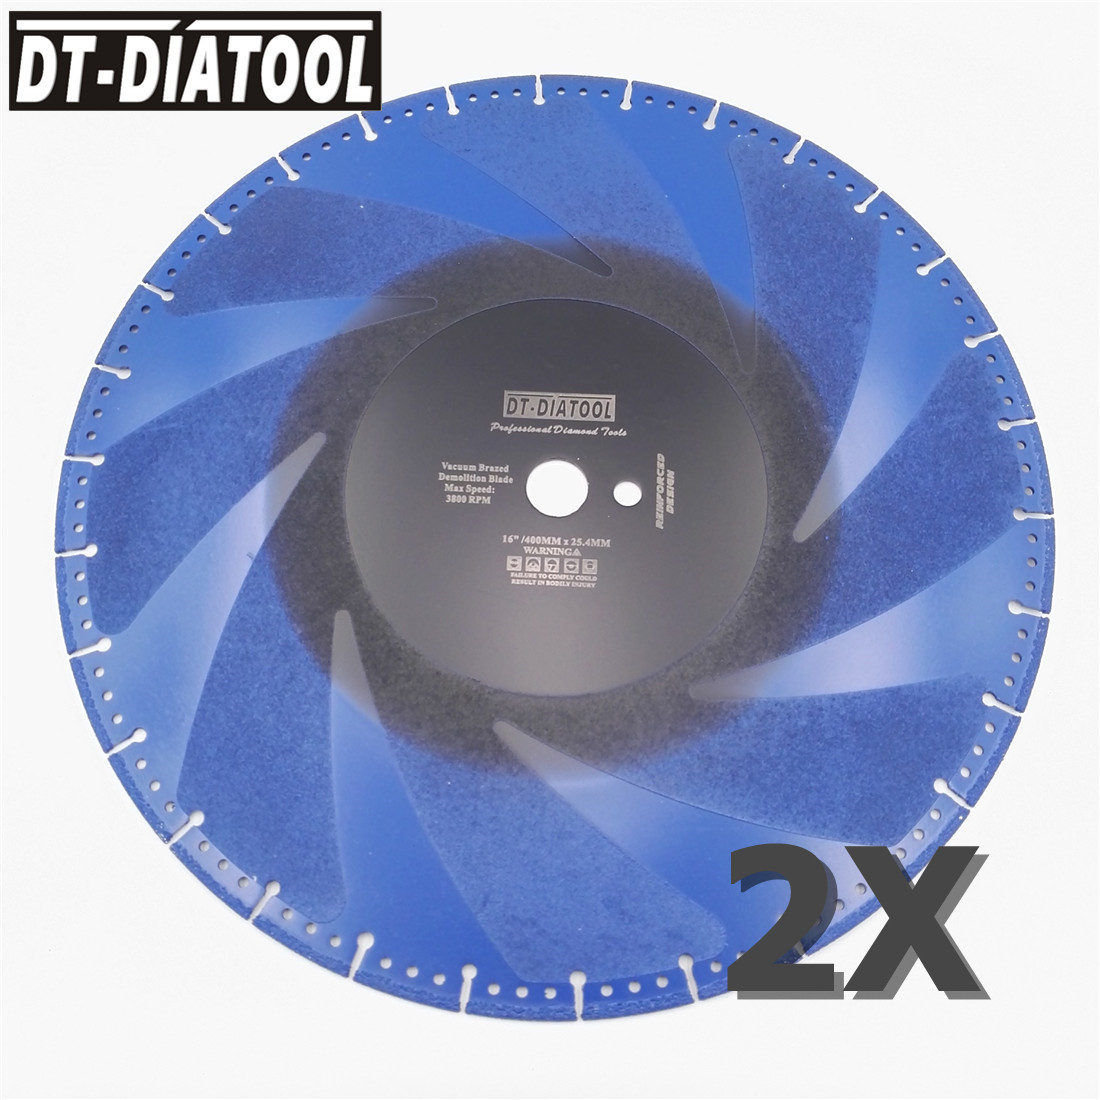 DT DIATOOL 2pcs 16 Vacuum Brazed Diamond Cutting Discs 400MM Rescue Demolition Saw Blade Steel Pipe Stone Reinforced Concrete